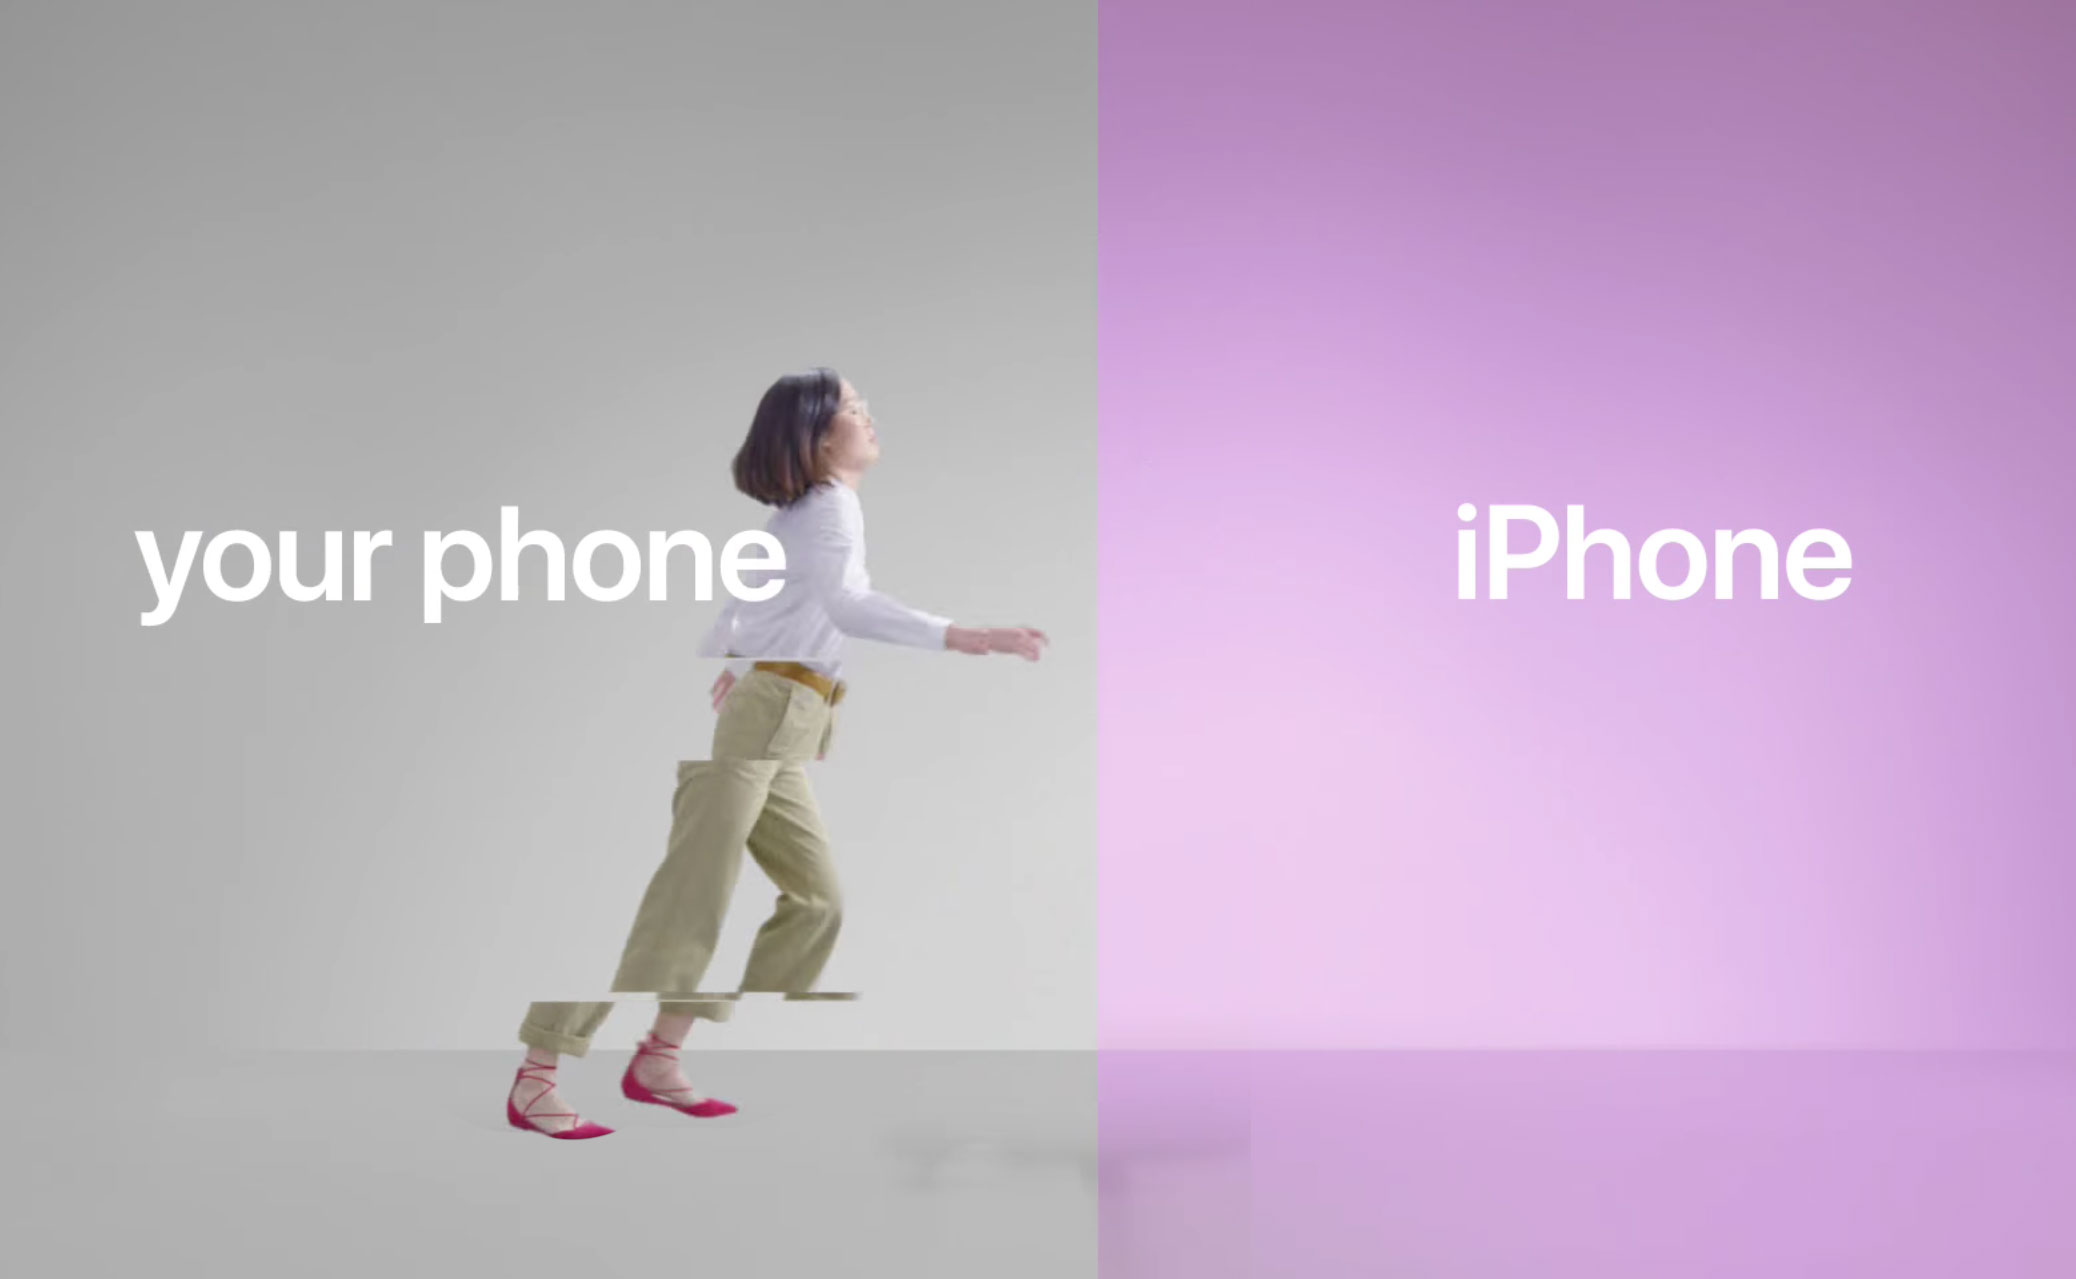 Apple has released three new videos which told about the benefits of iOS and the ease of transition to it with Android